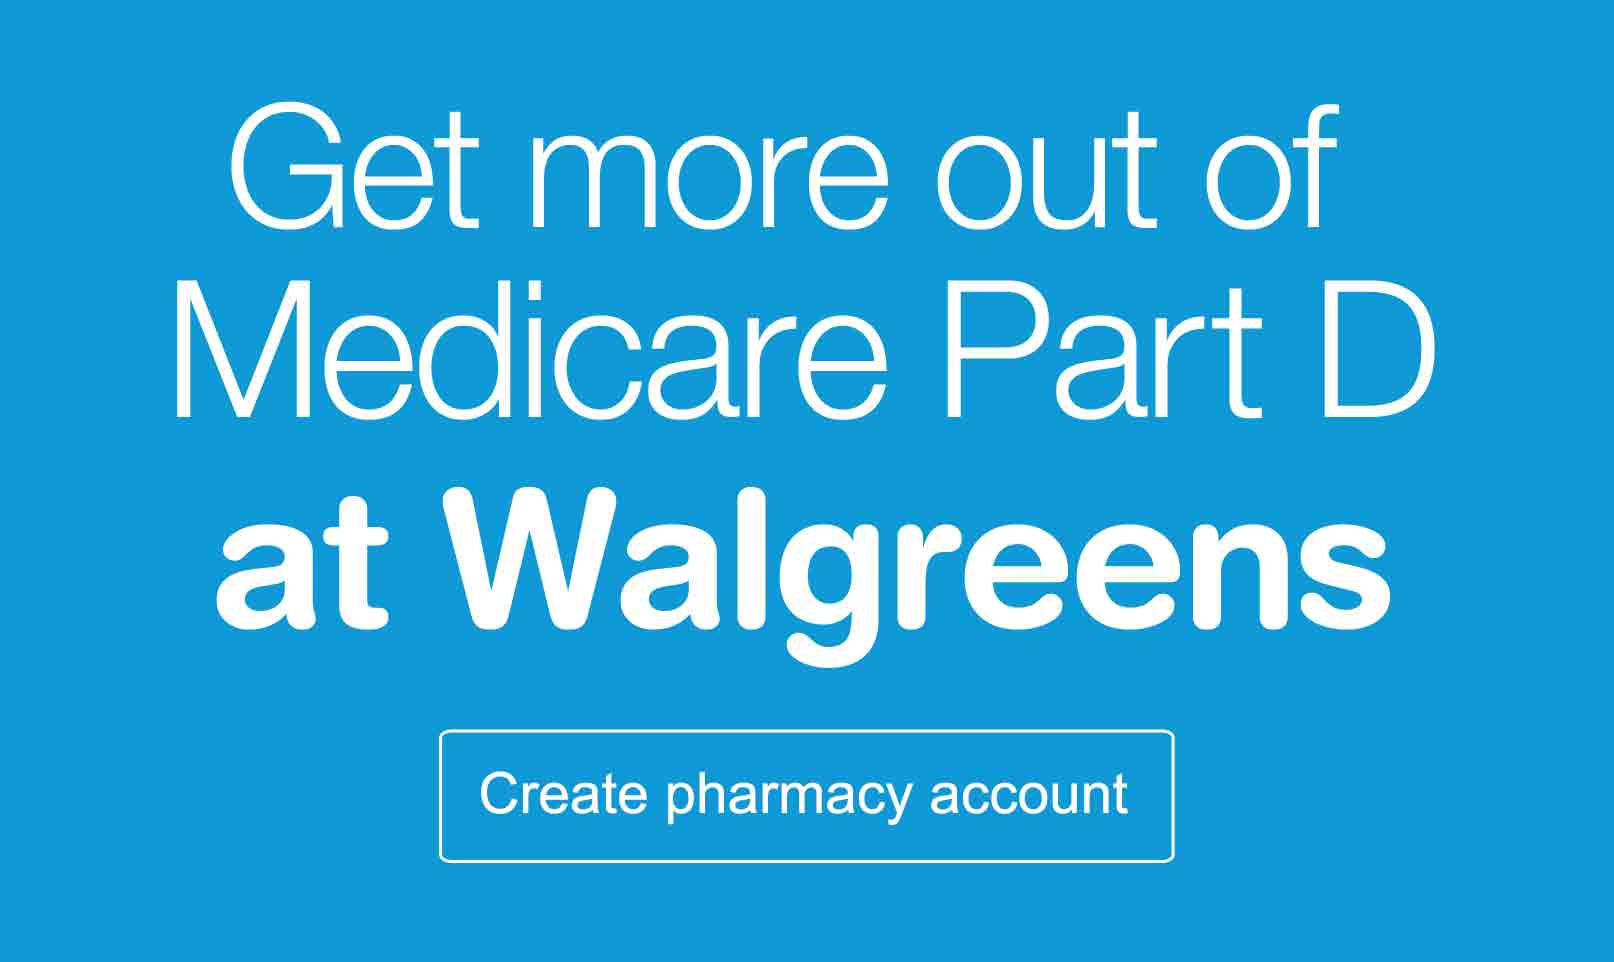 Get more out of Medicare Part D at Walgreens. Create pharmacy account.